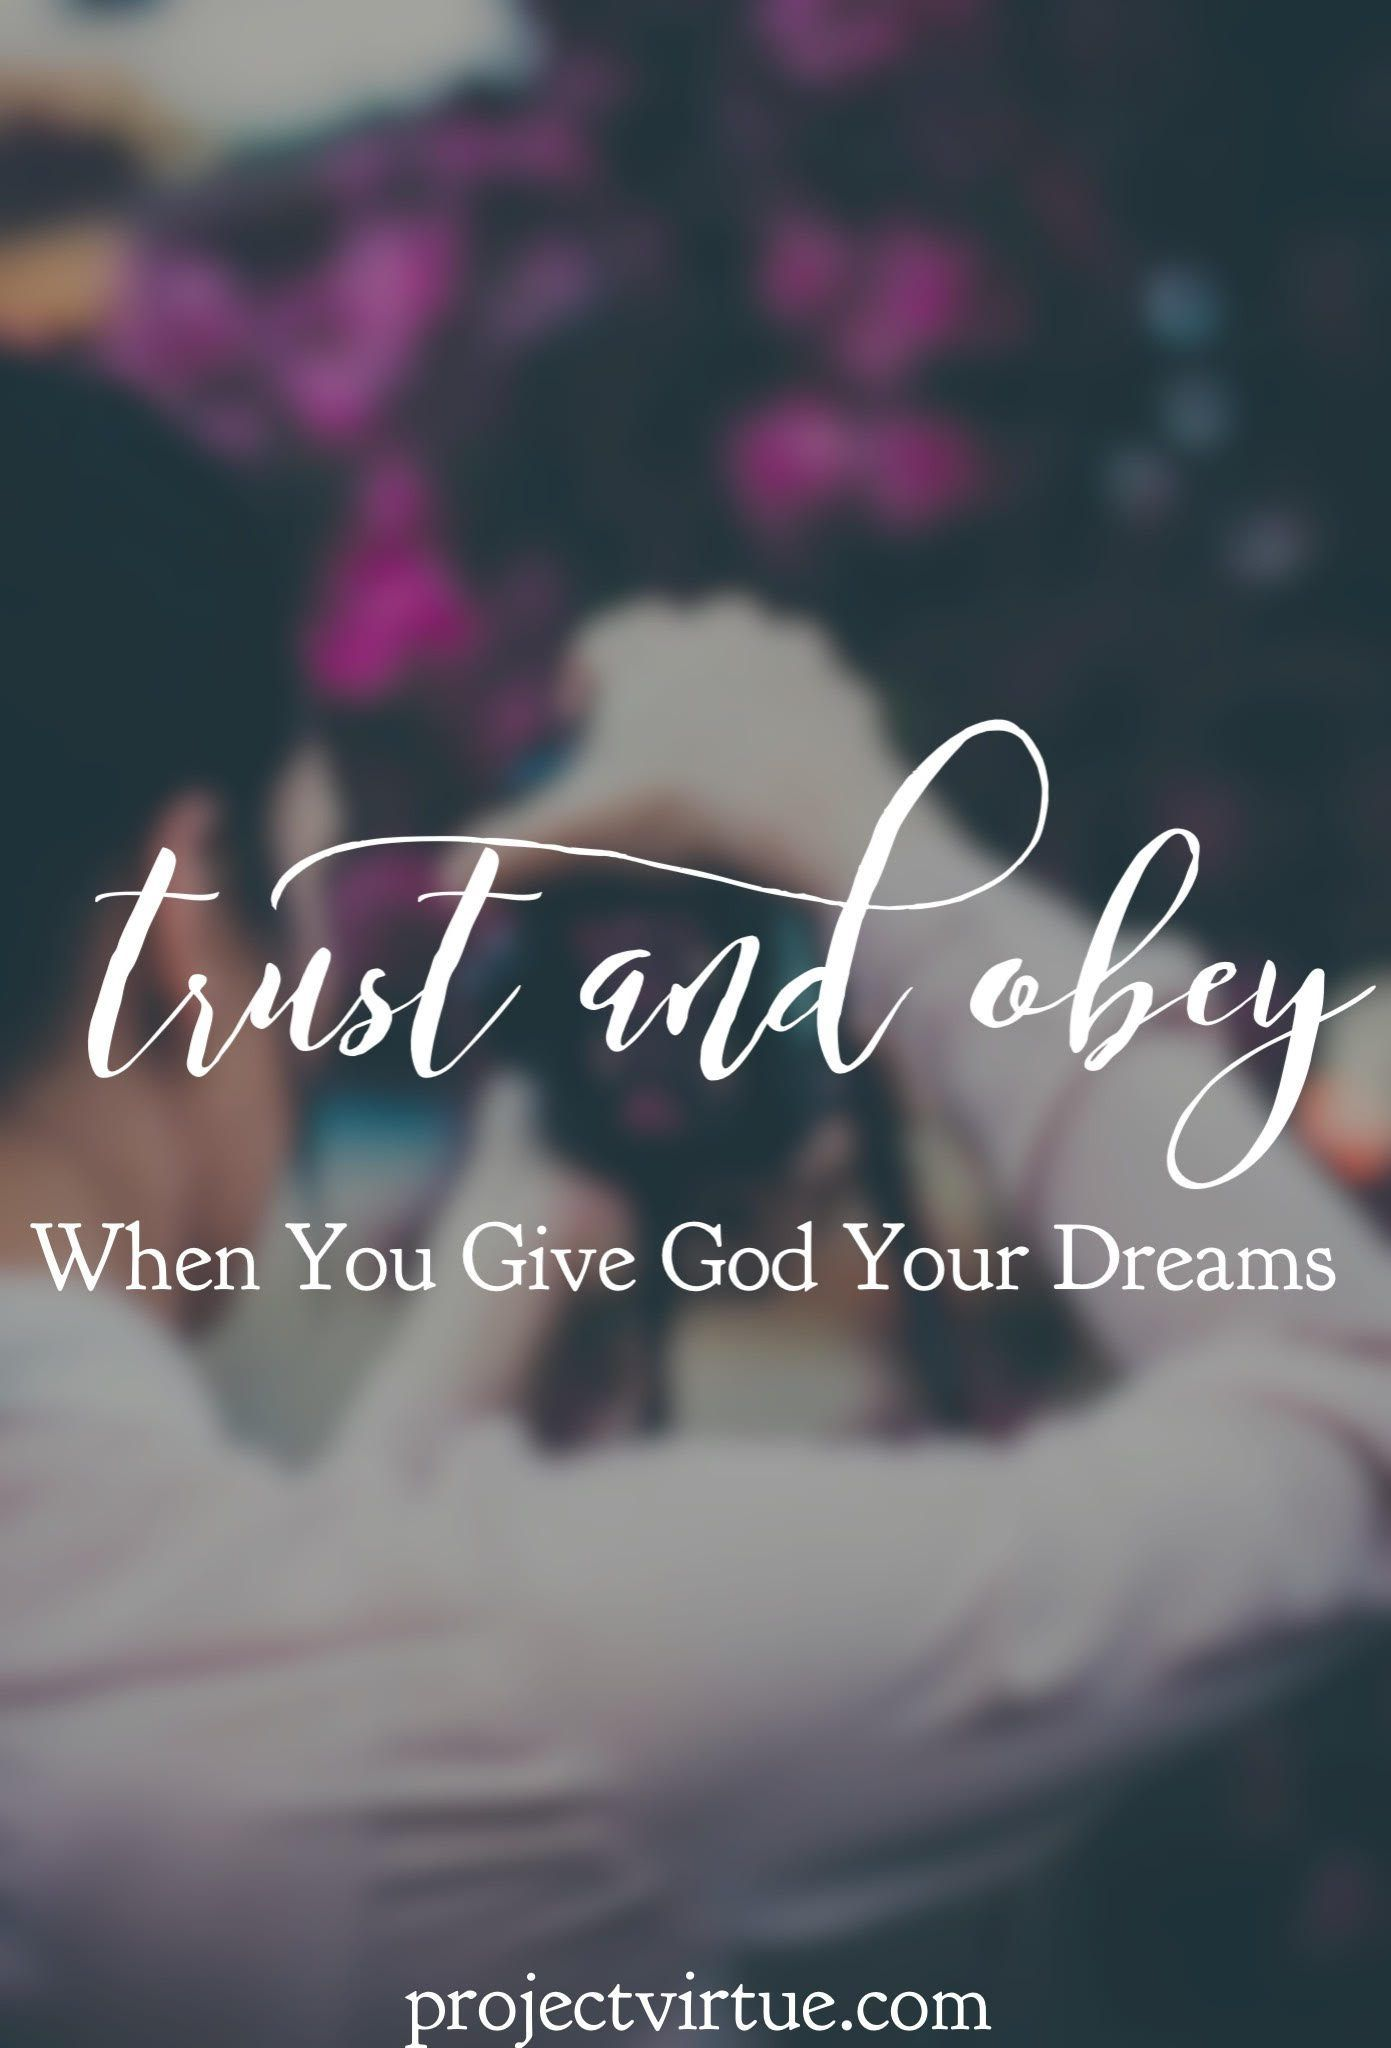 Trust and Obey: When You Give God Your Dreams